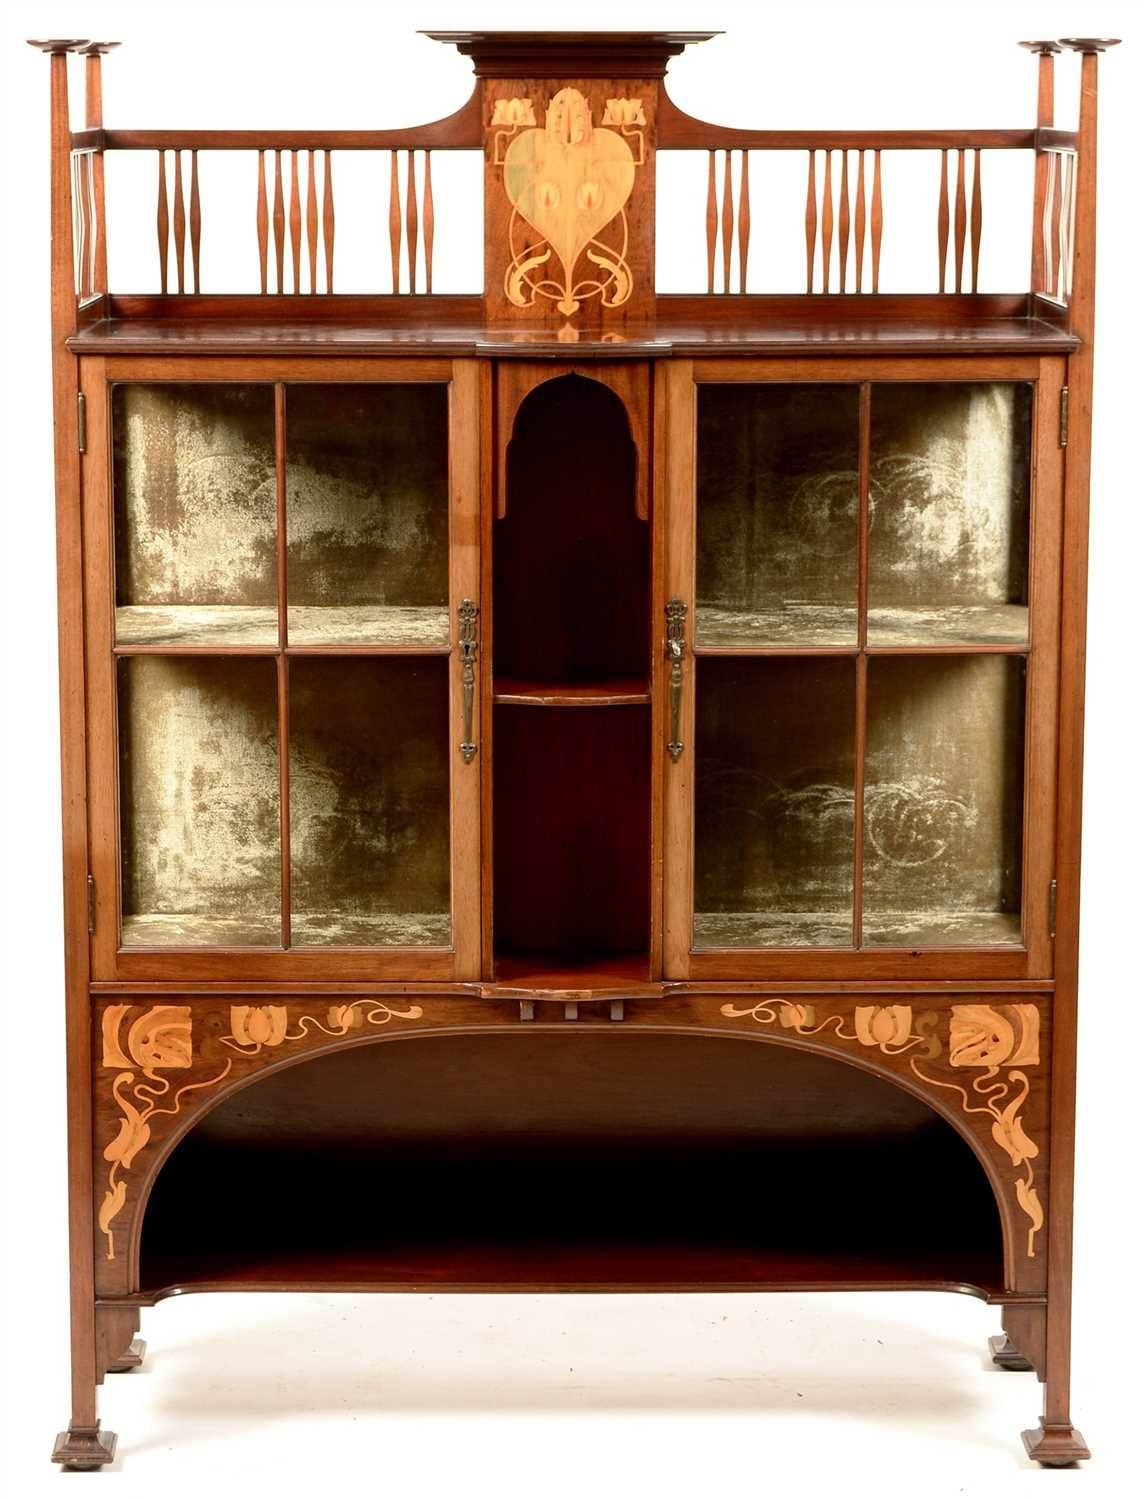 855 - Shapland & Petter Display cabinet